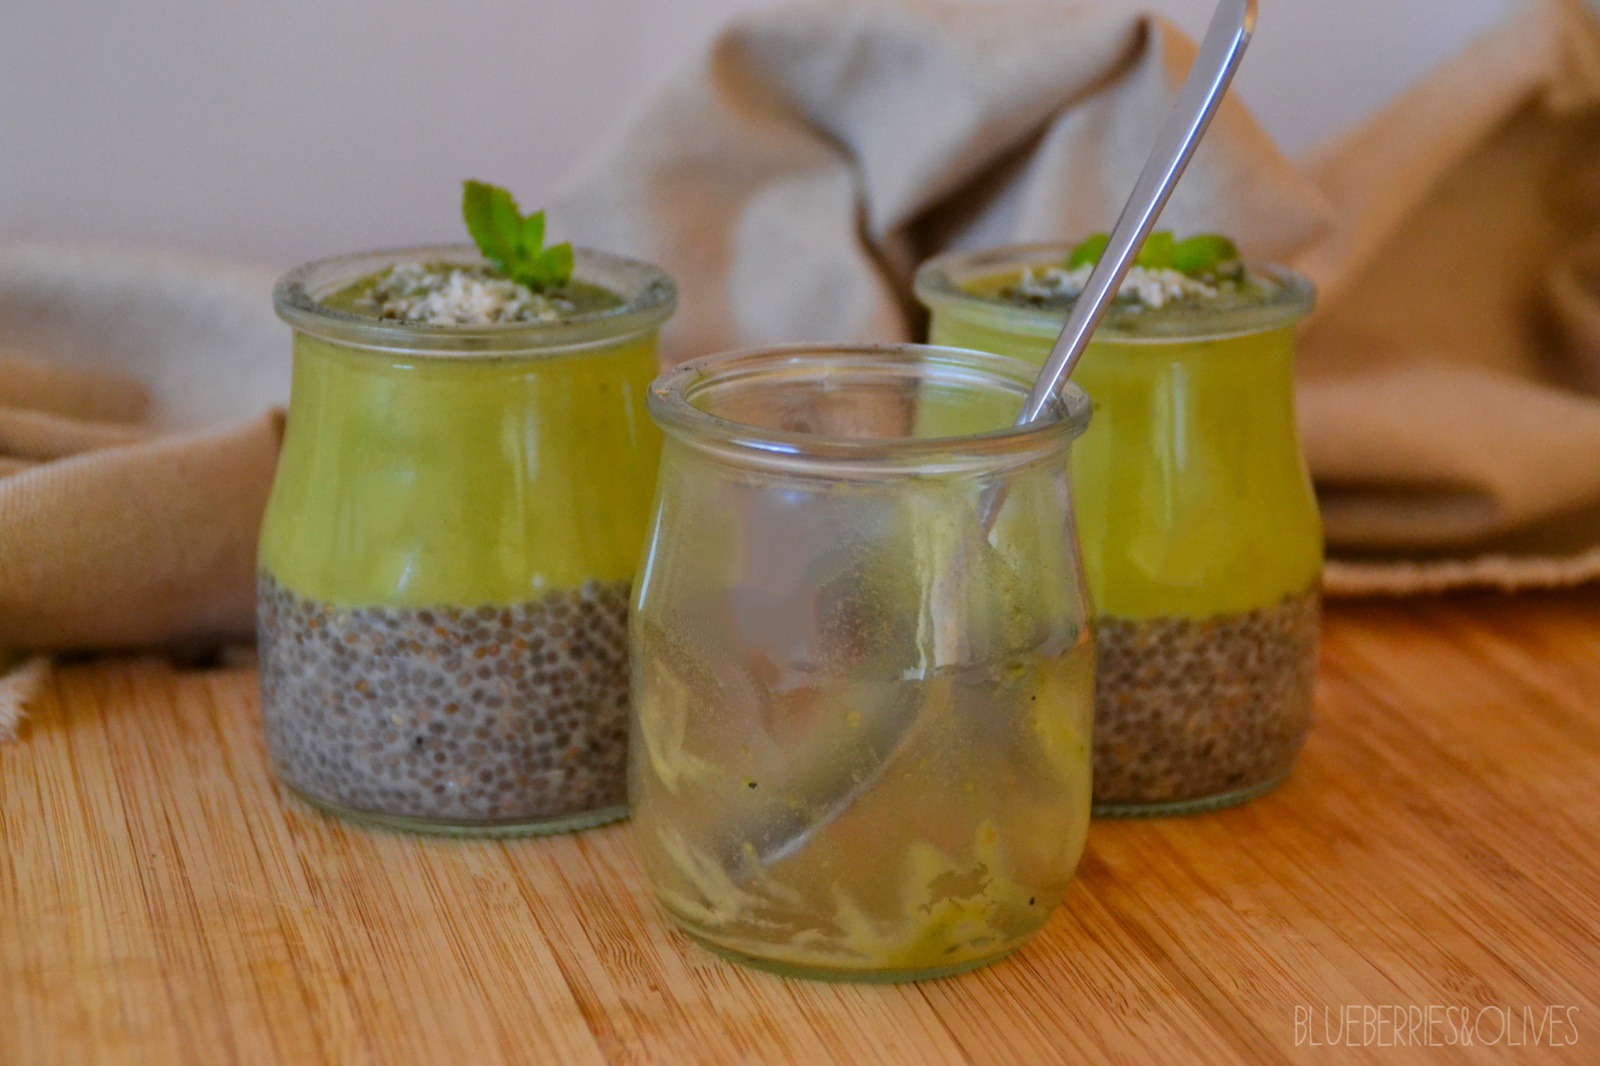 CHIA AND AVOCADO PUDDING